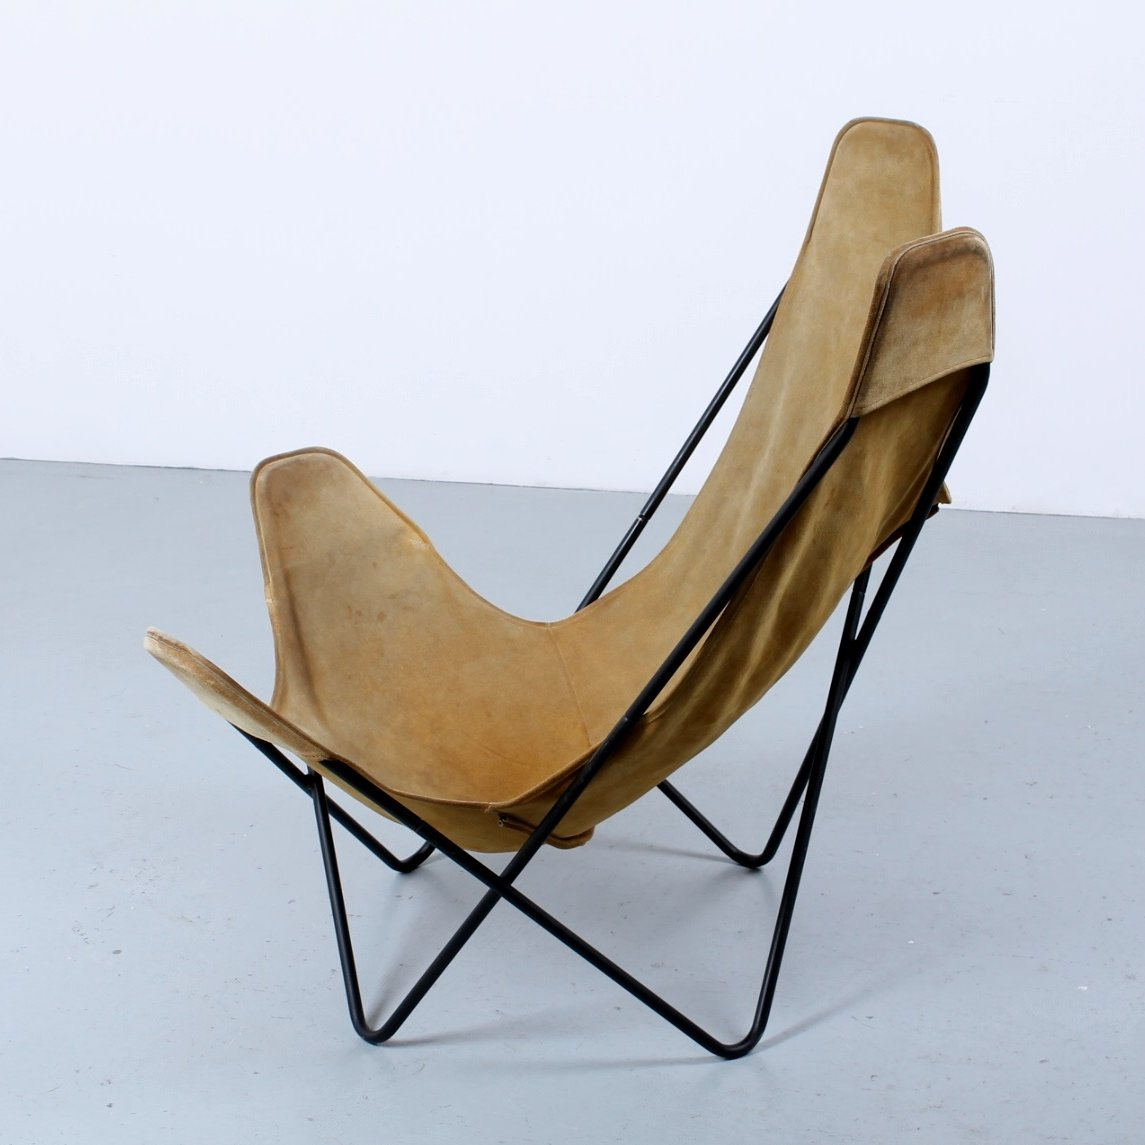 Butterfly sling chair by Jorge Ferrari Hardoy for Knoll, 1950s | #78624